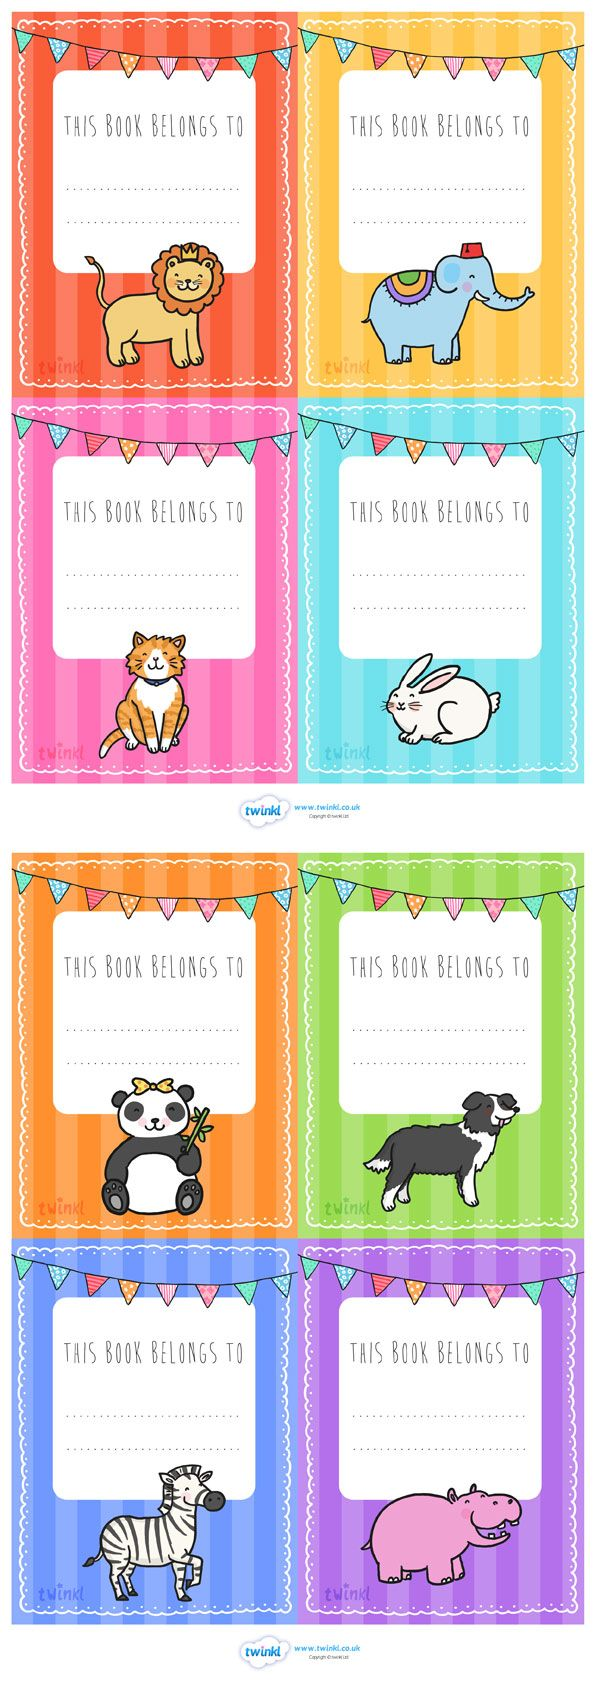 Twinkl Resources >> Animal Themed This Book Belongs To Labels  >> Thousands of printable primary teaching resources for EYFS, KS1, KS2 and beyond! this book belongs to, book labels, book name labels, animal themed, name labels, animal book, name labels, book, bunting,